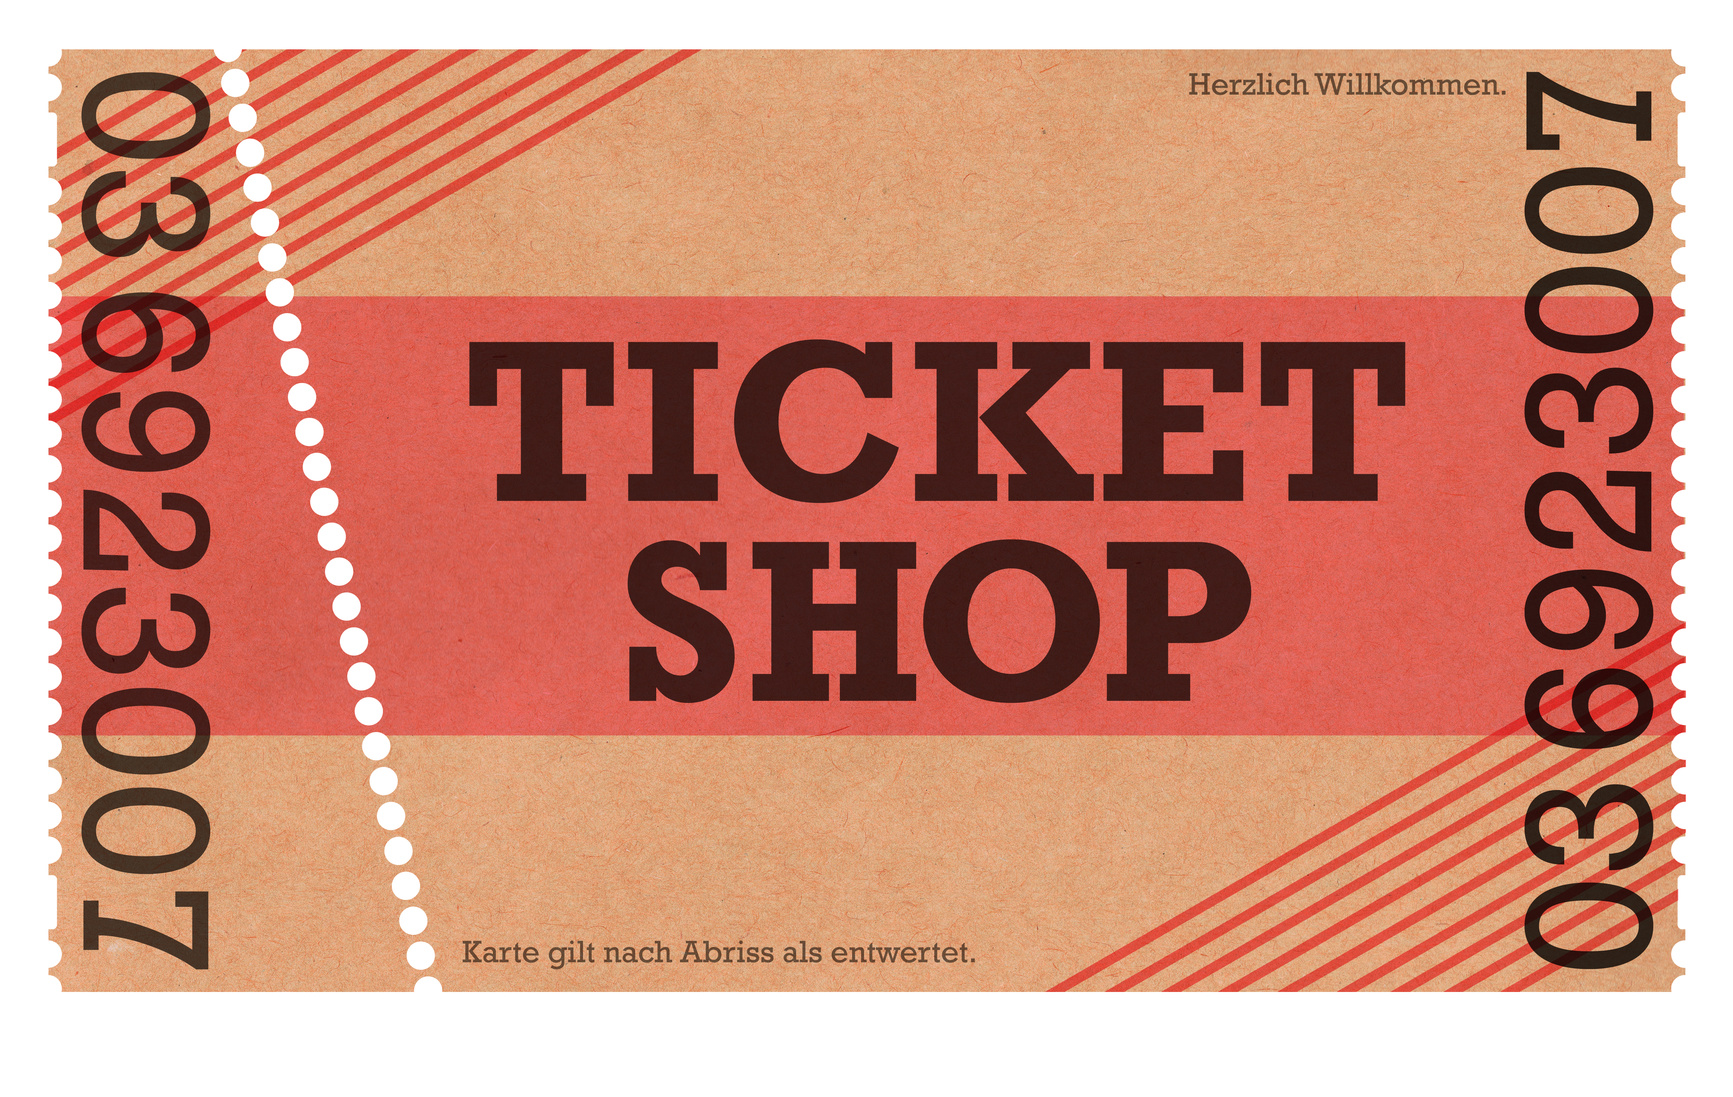 Ticket Shop – Classic Ticket – Webshop / Online-Shop / Vintage Design / Retro Style